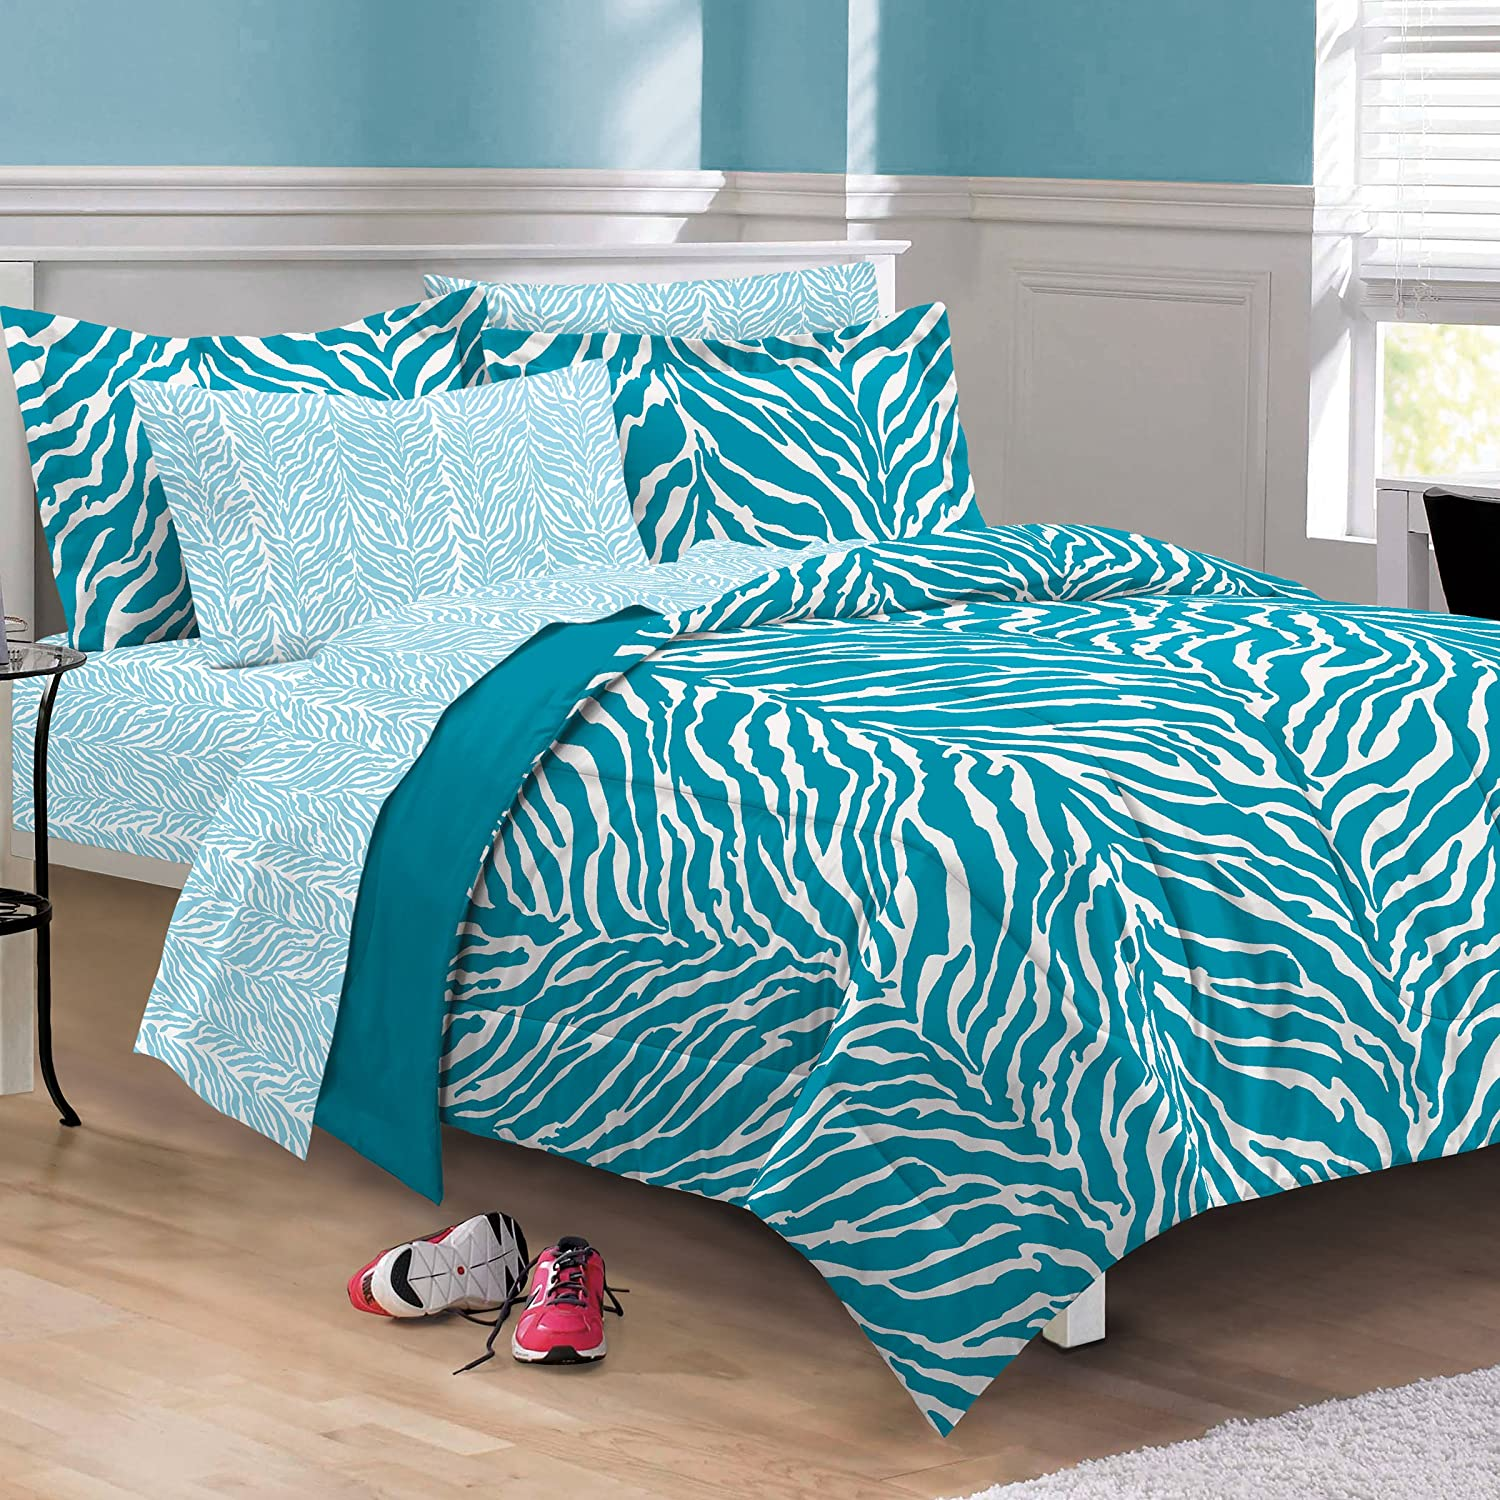 Zebra Soft Comforter Sheet Set Aqua Full Girl Animal Print